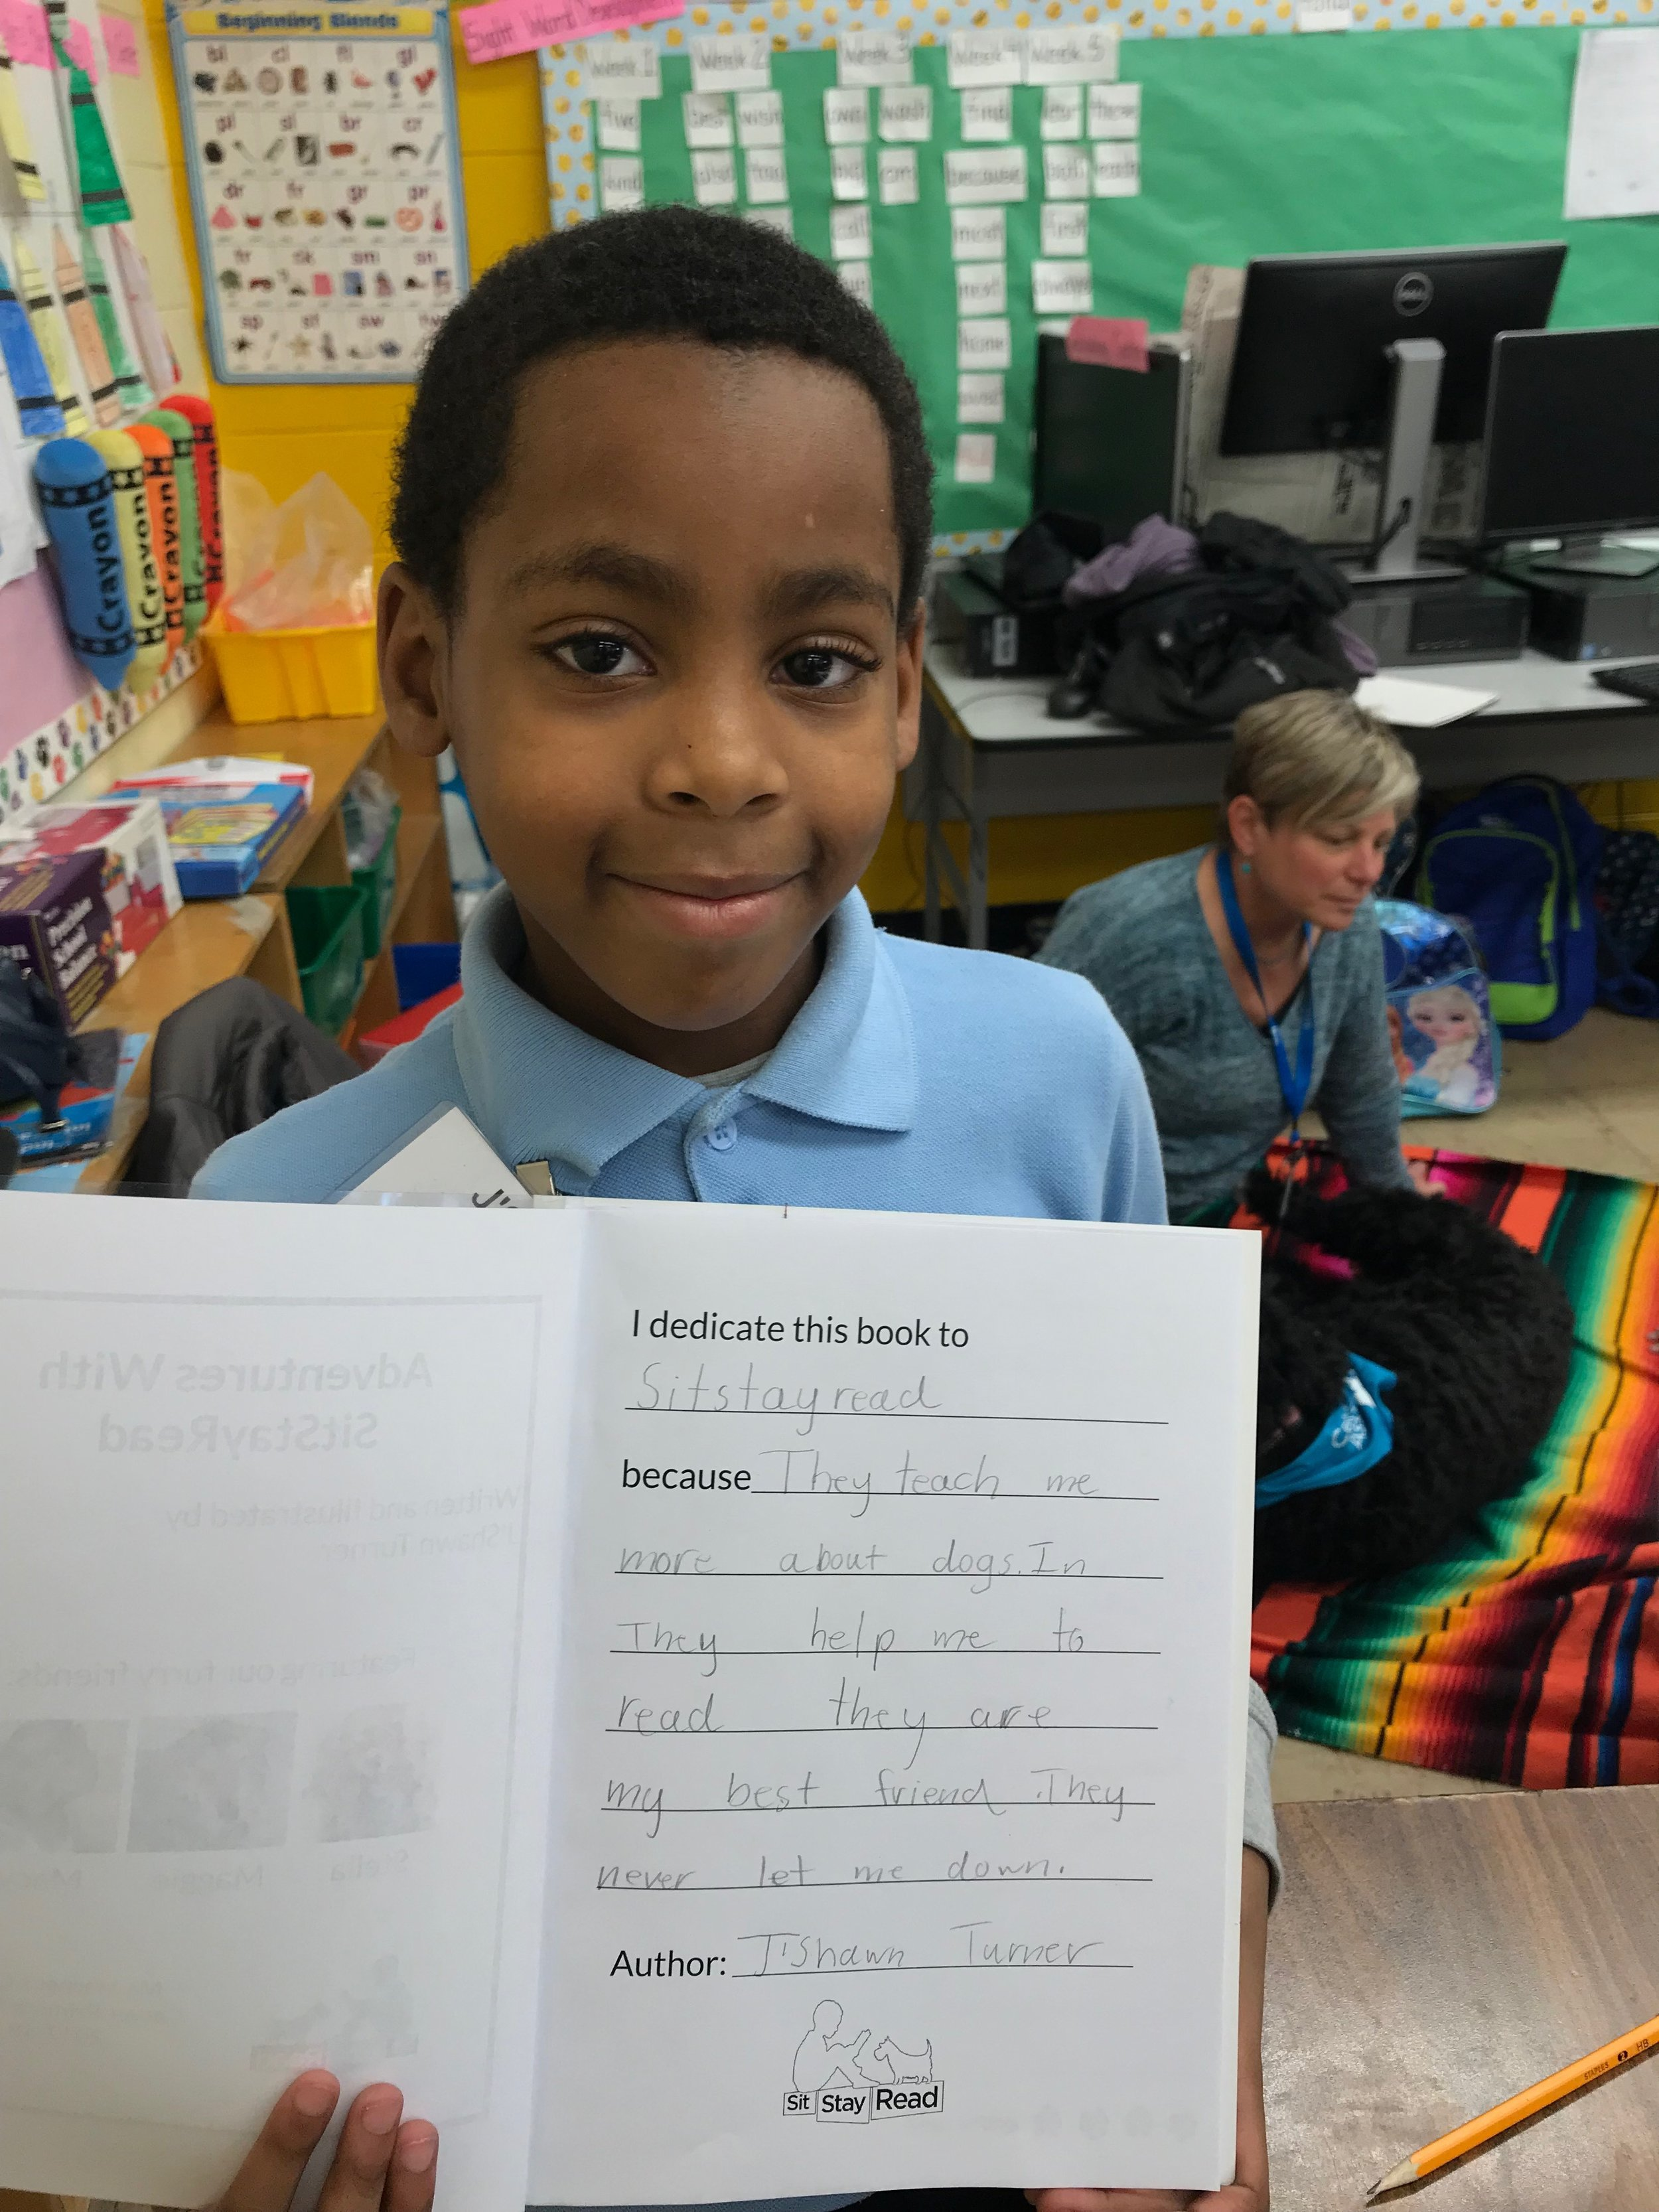 J'Shawn - Second grader at Carver School in Altgeld Gardens.